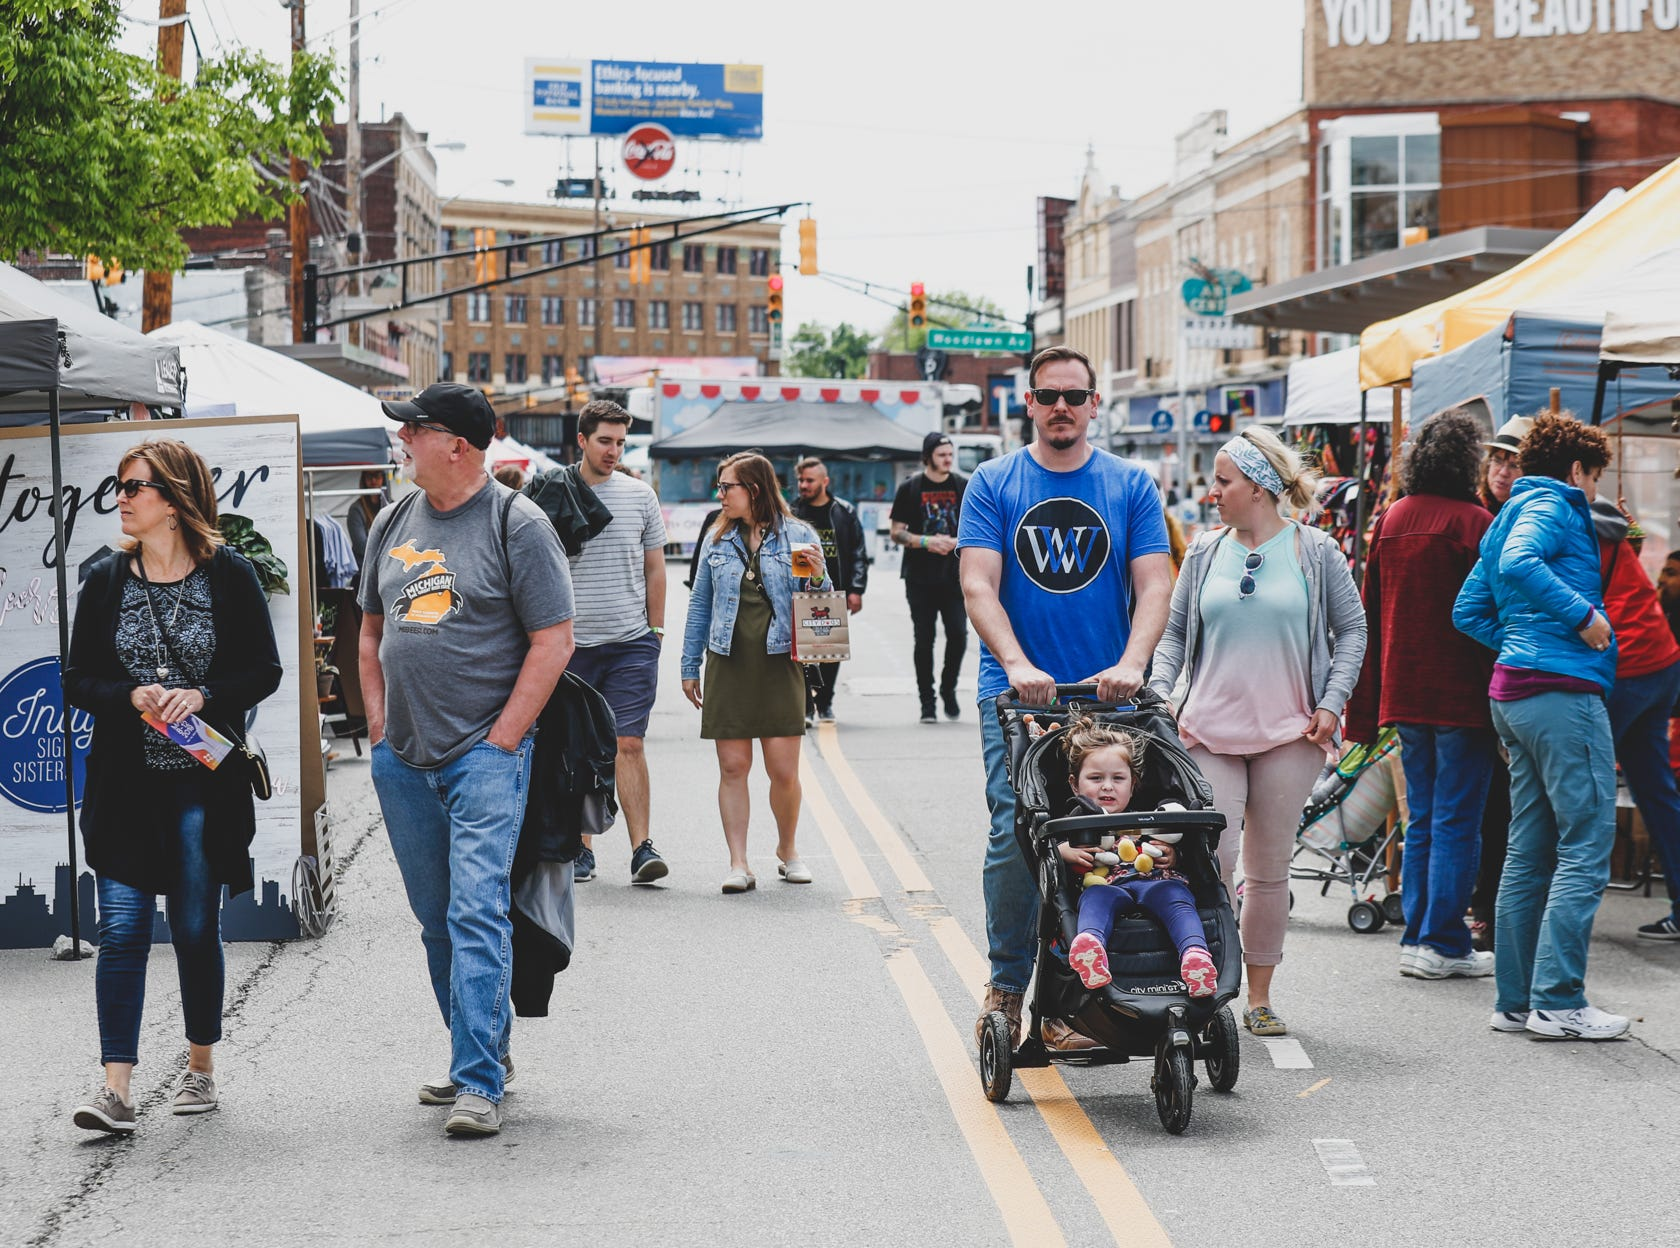 Festival-goers during the Virginia Avenue Music Fest, held in Fountain Square, located in Indianapolis, on Saturday, May 11, 2019.